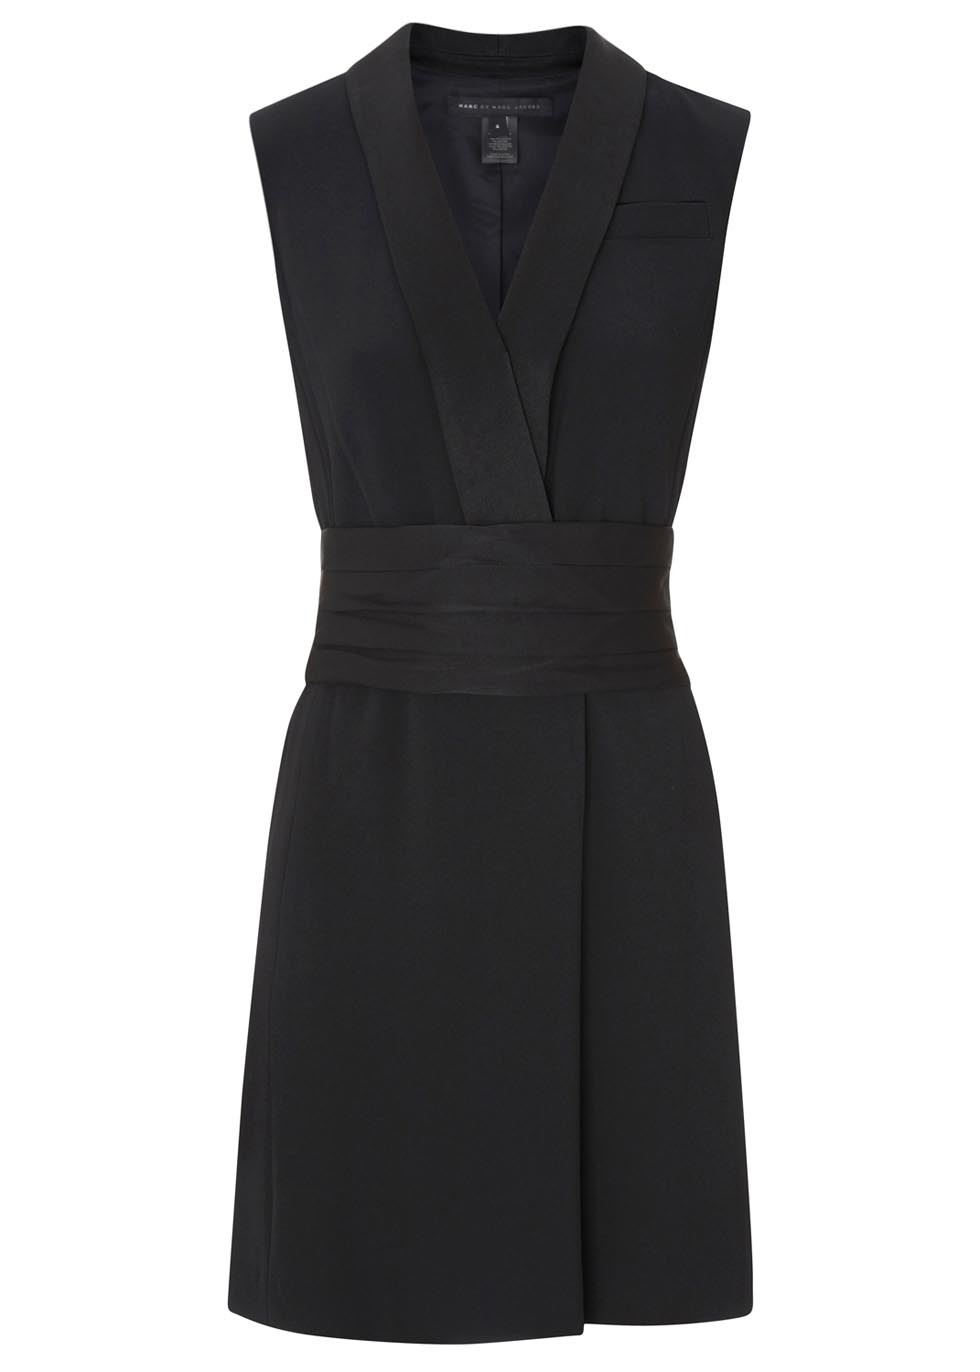 Anya Black Crepe Tuxedo Dress Size - style: shirt; neckline: v-neck; fit: fitted at waist; pattern: plain; sleeve style: sleeveless; waist detail: wide waistband/cummerbund; predominant colour: black; occasions: evening, occasion, creative work; length: just above the knee; fibres: polyester/polyamide - mix; sleeve length: sleeveless; texture group: crepes; pattern type: fabric; season: s/s 2014